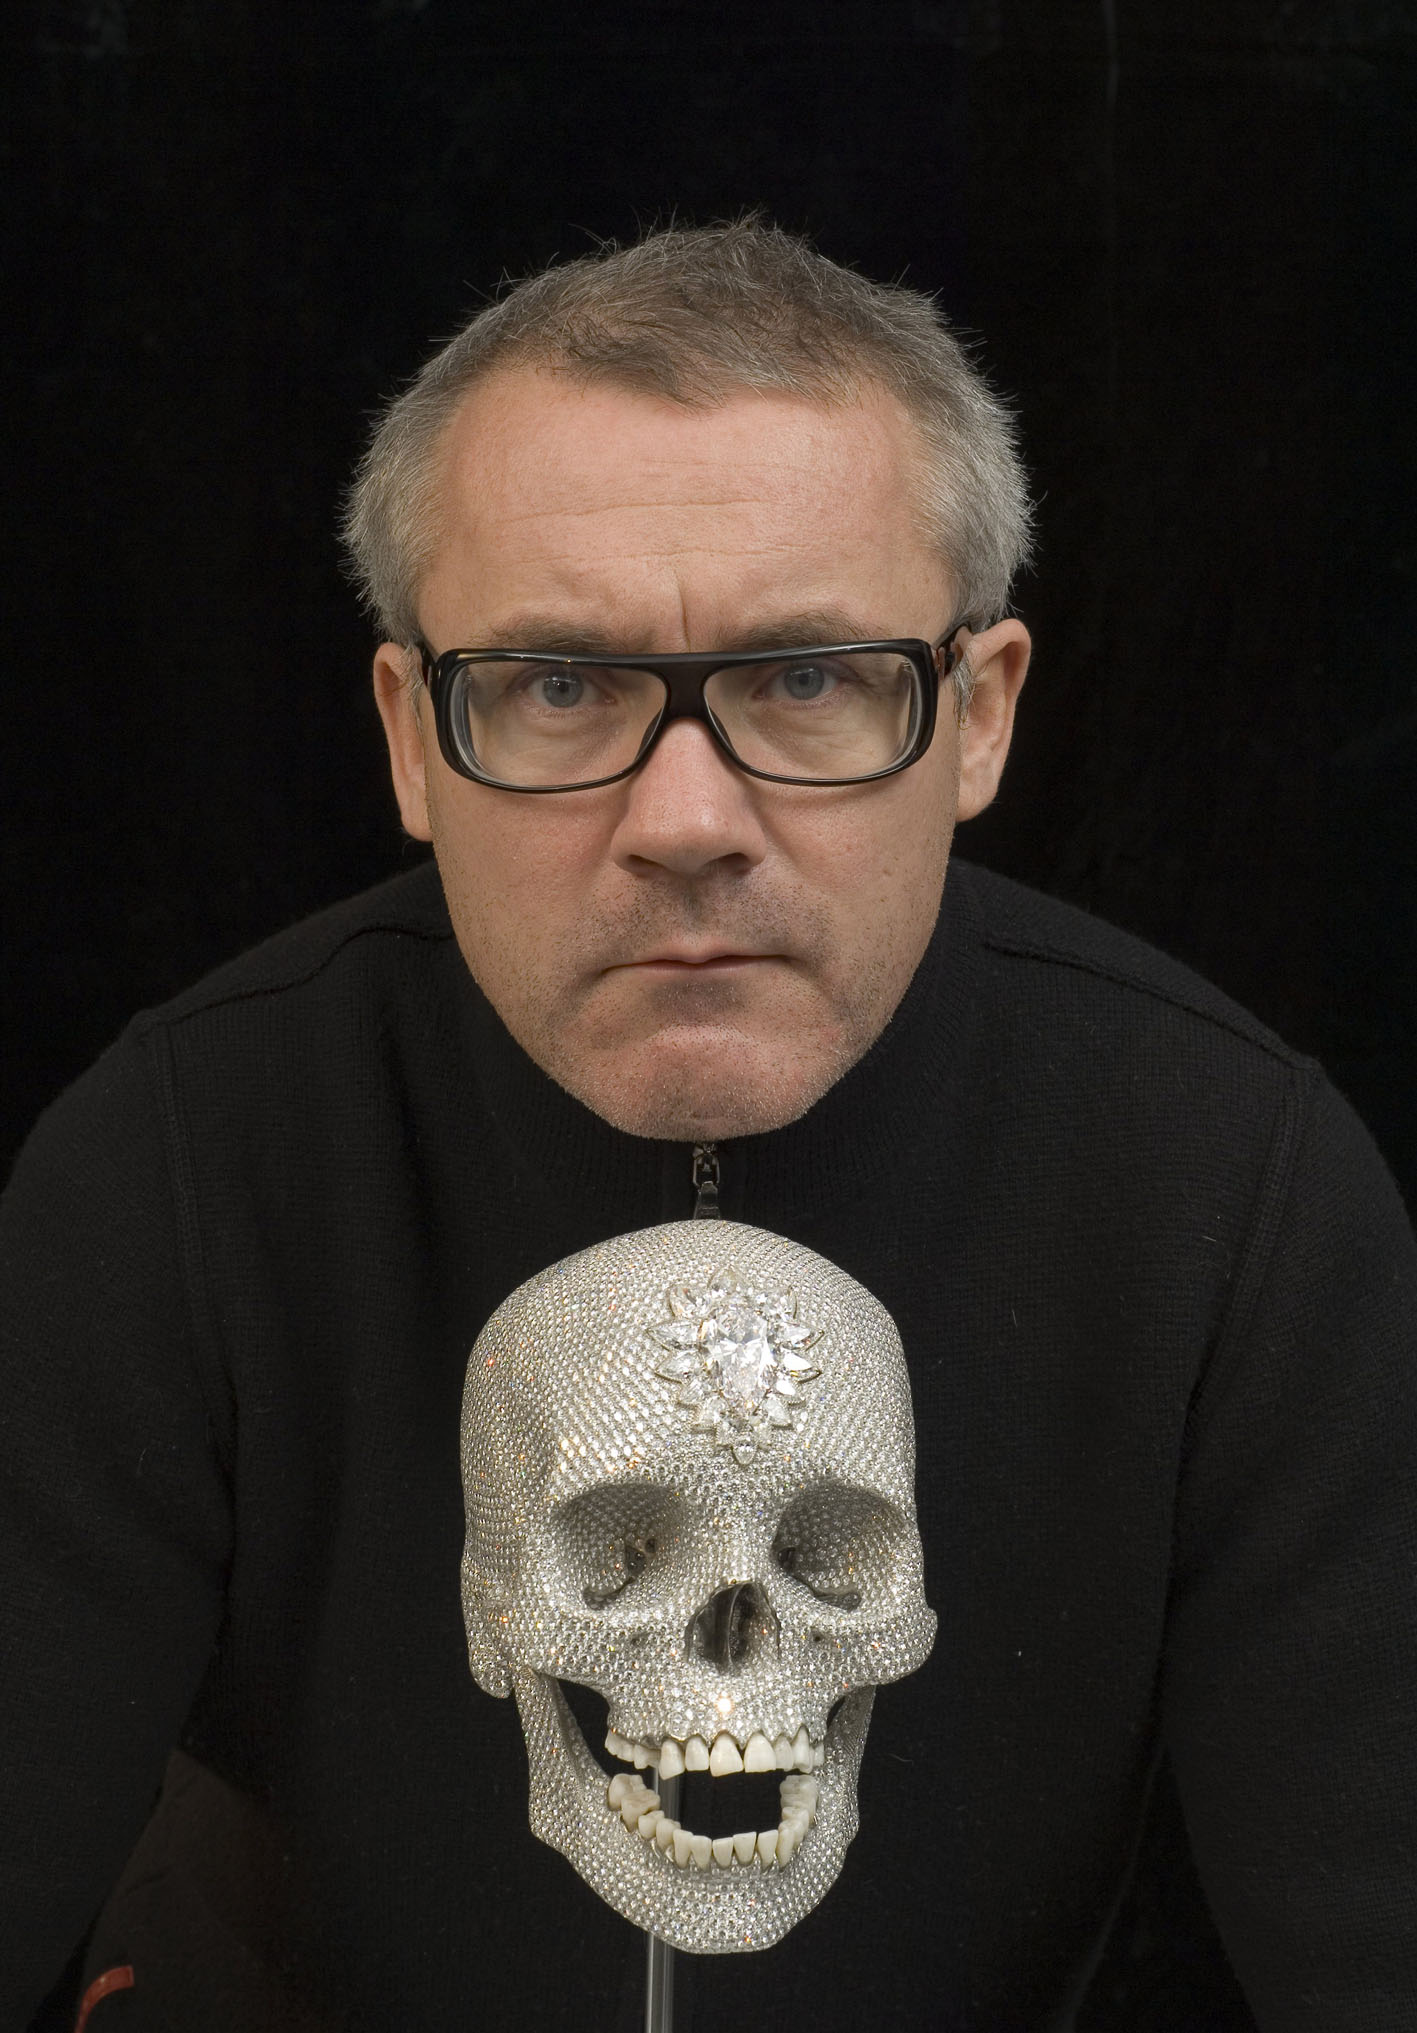 British artist Damien Hirst poses with a diamond-encrusted platinum skull, in London